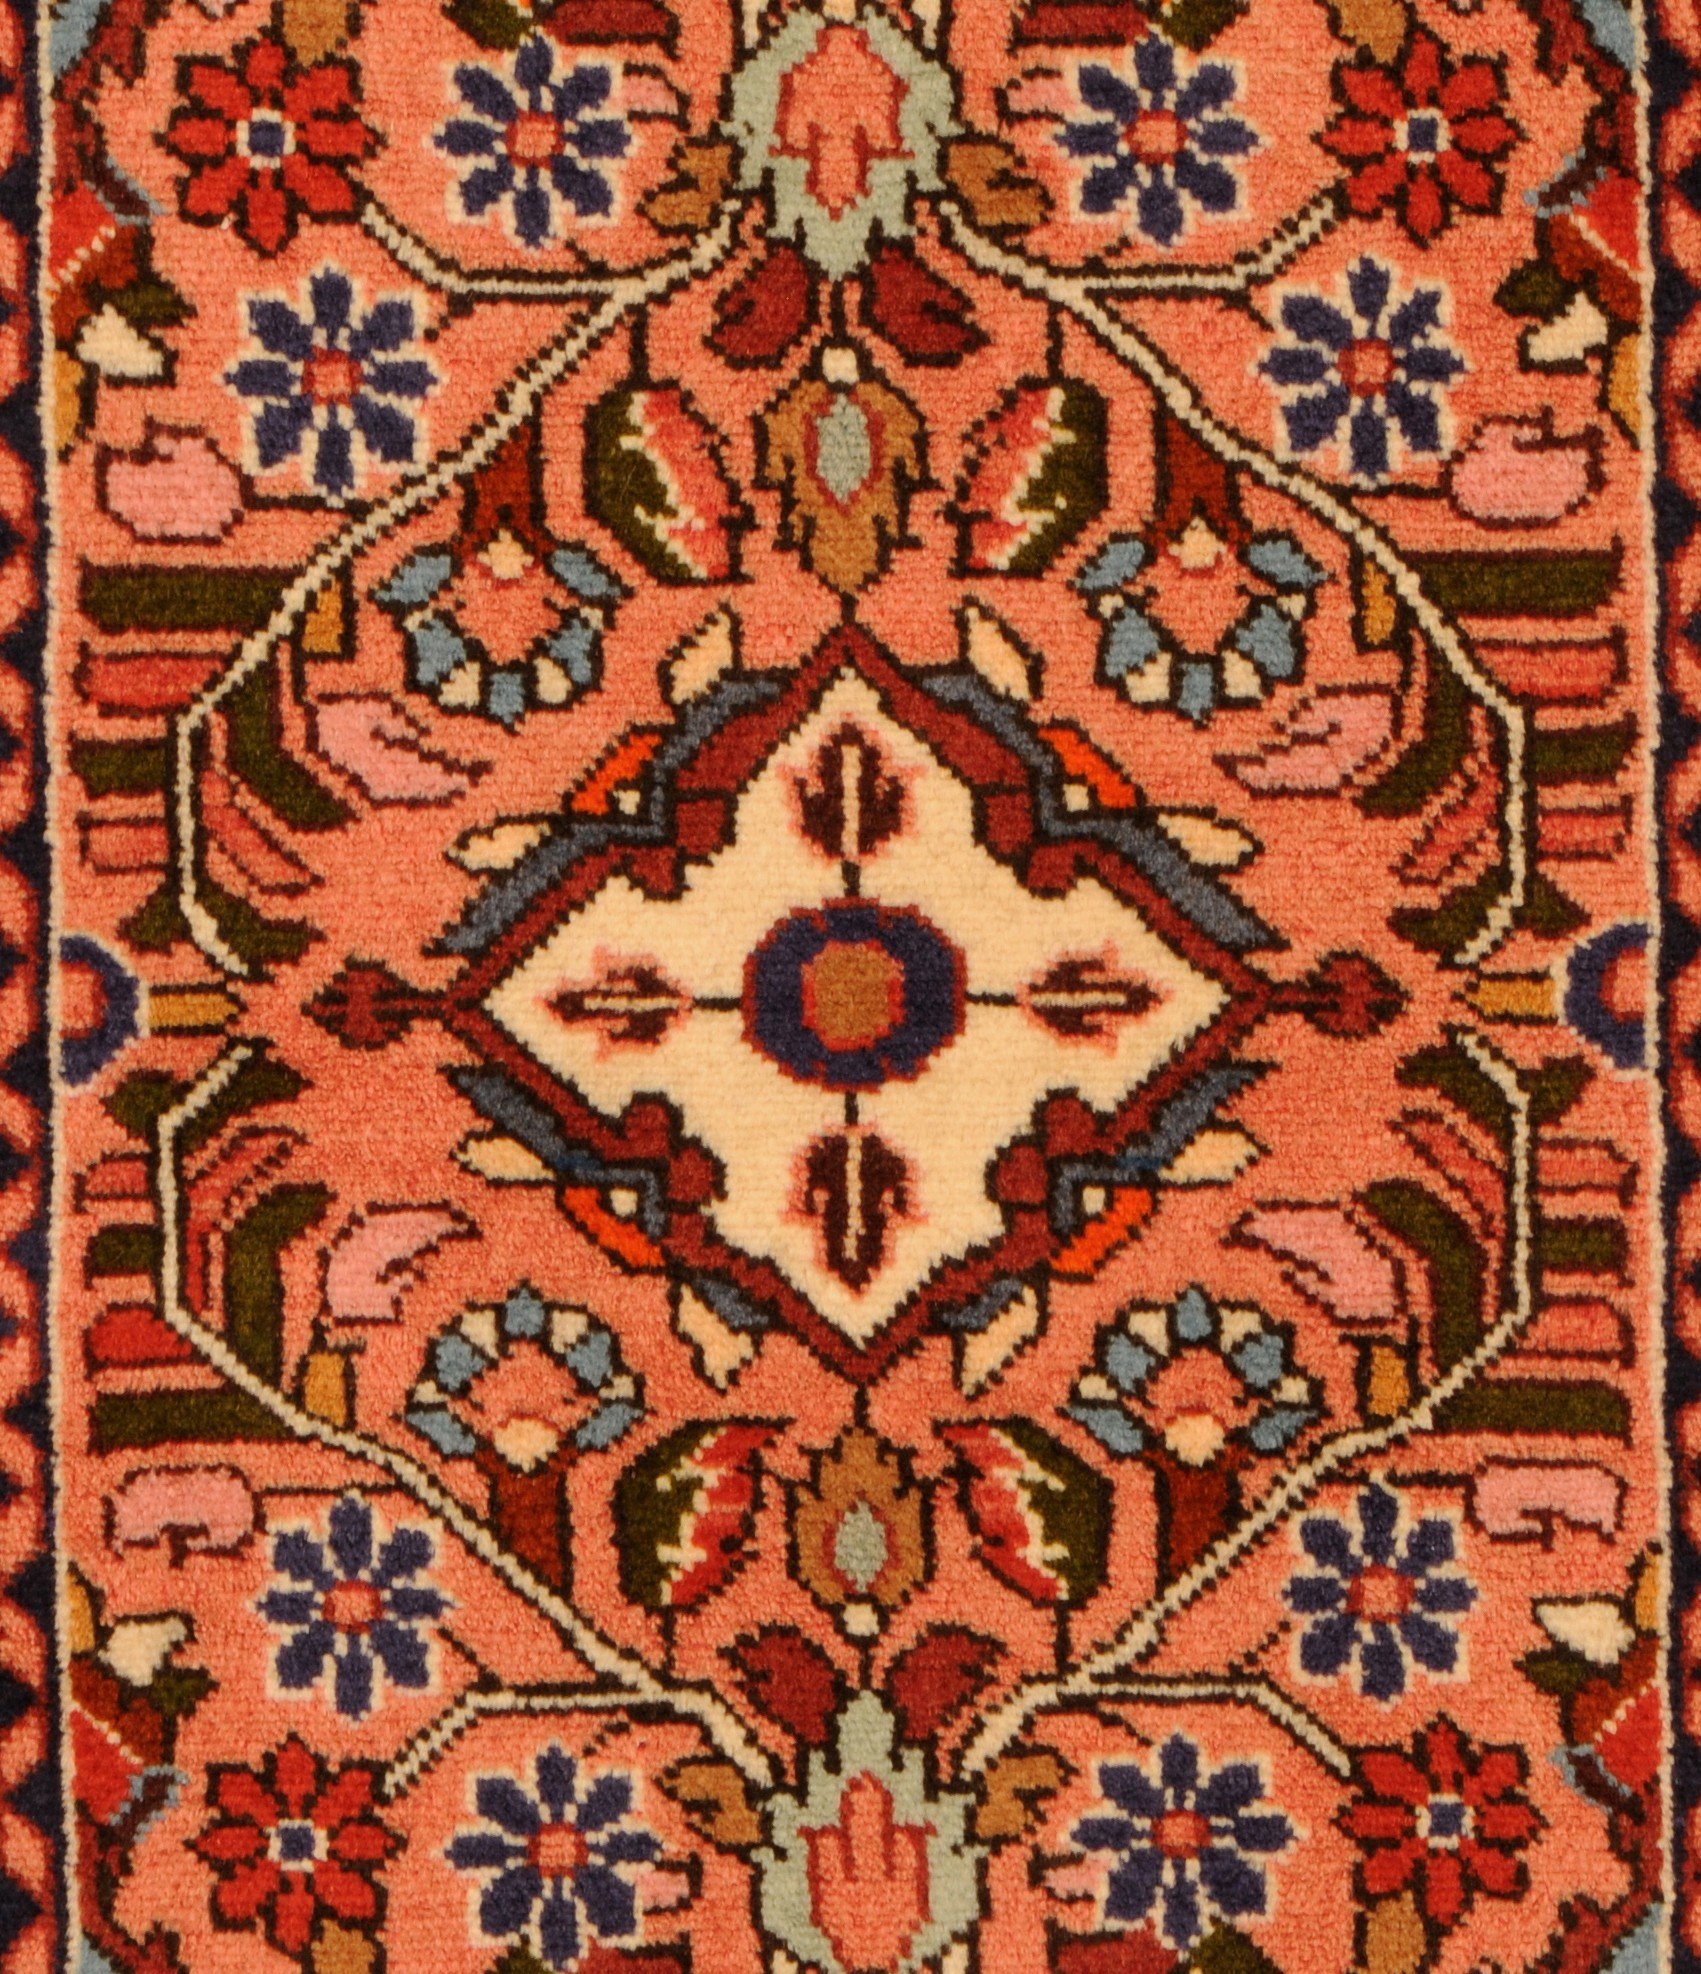 1701x1974 Persian Rug Pattern Wallpaper Iranian Carpet Design Carpets And Rugsw37